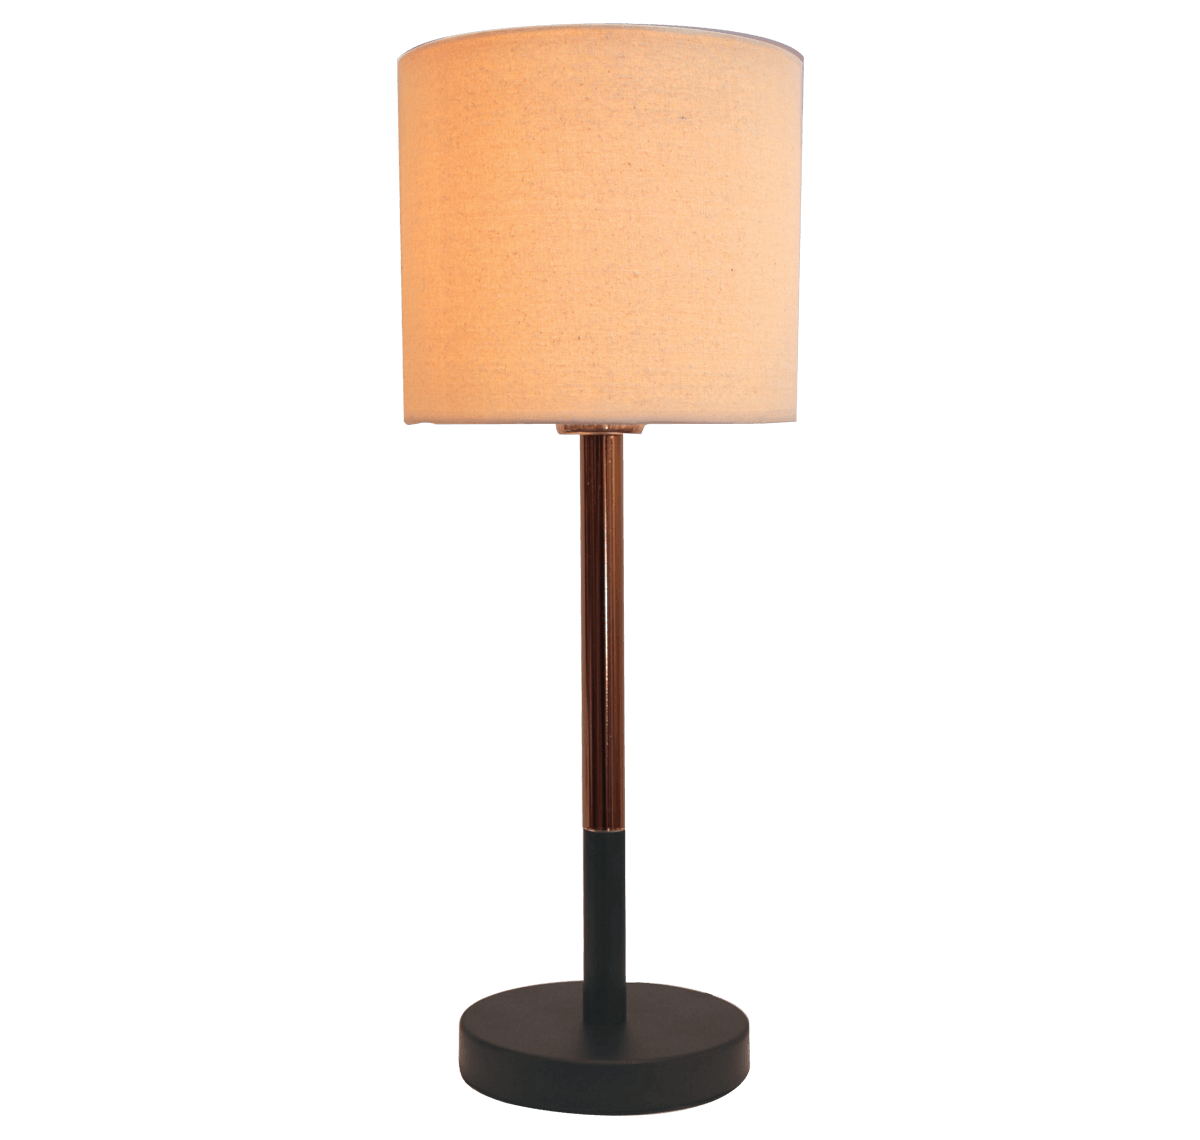 Buy Havells Metallo Tc Fabric Shade Cup Table Lamp Online At Low Price In India